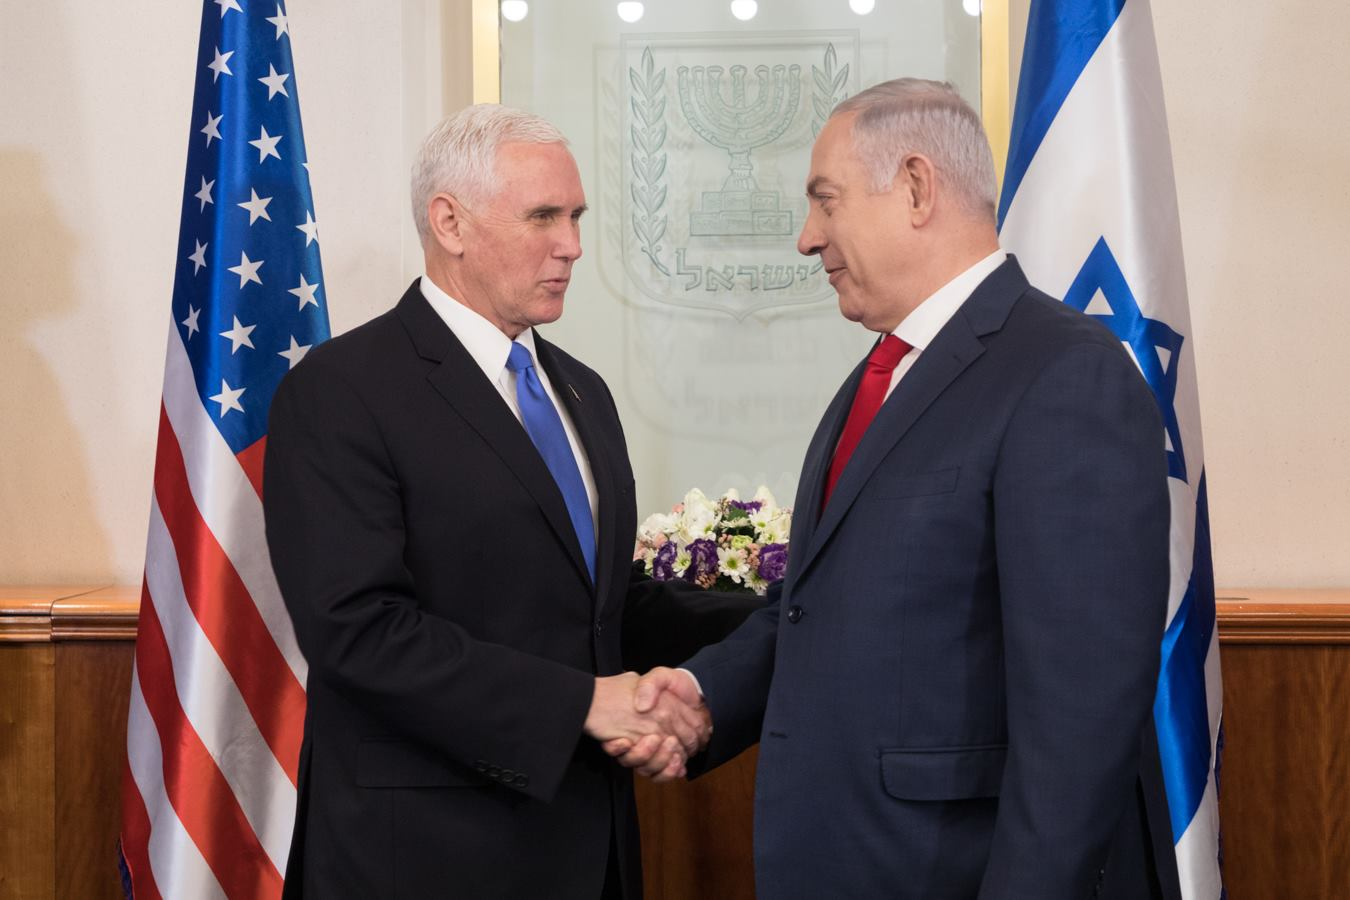 Real Clear Israel: Video - VP Pence's Remarks at the Knesset